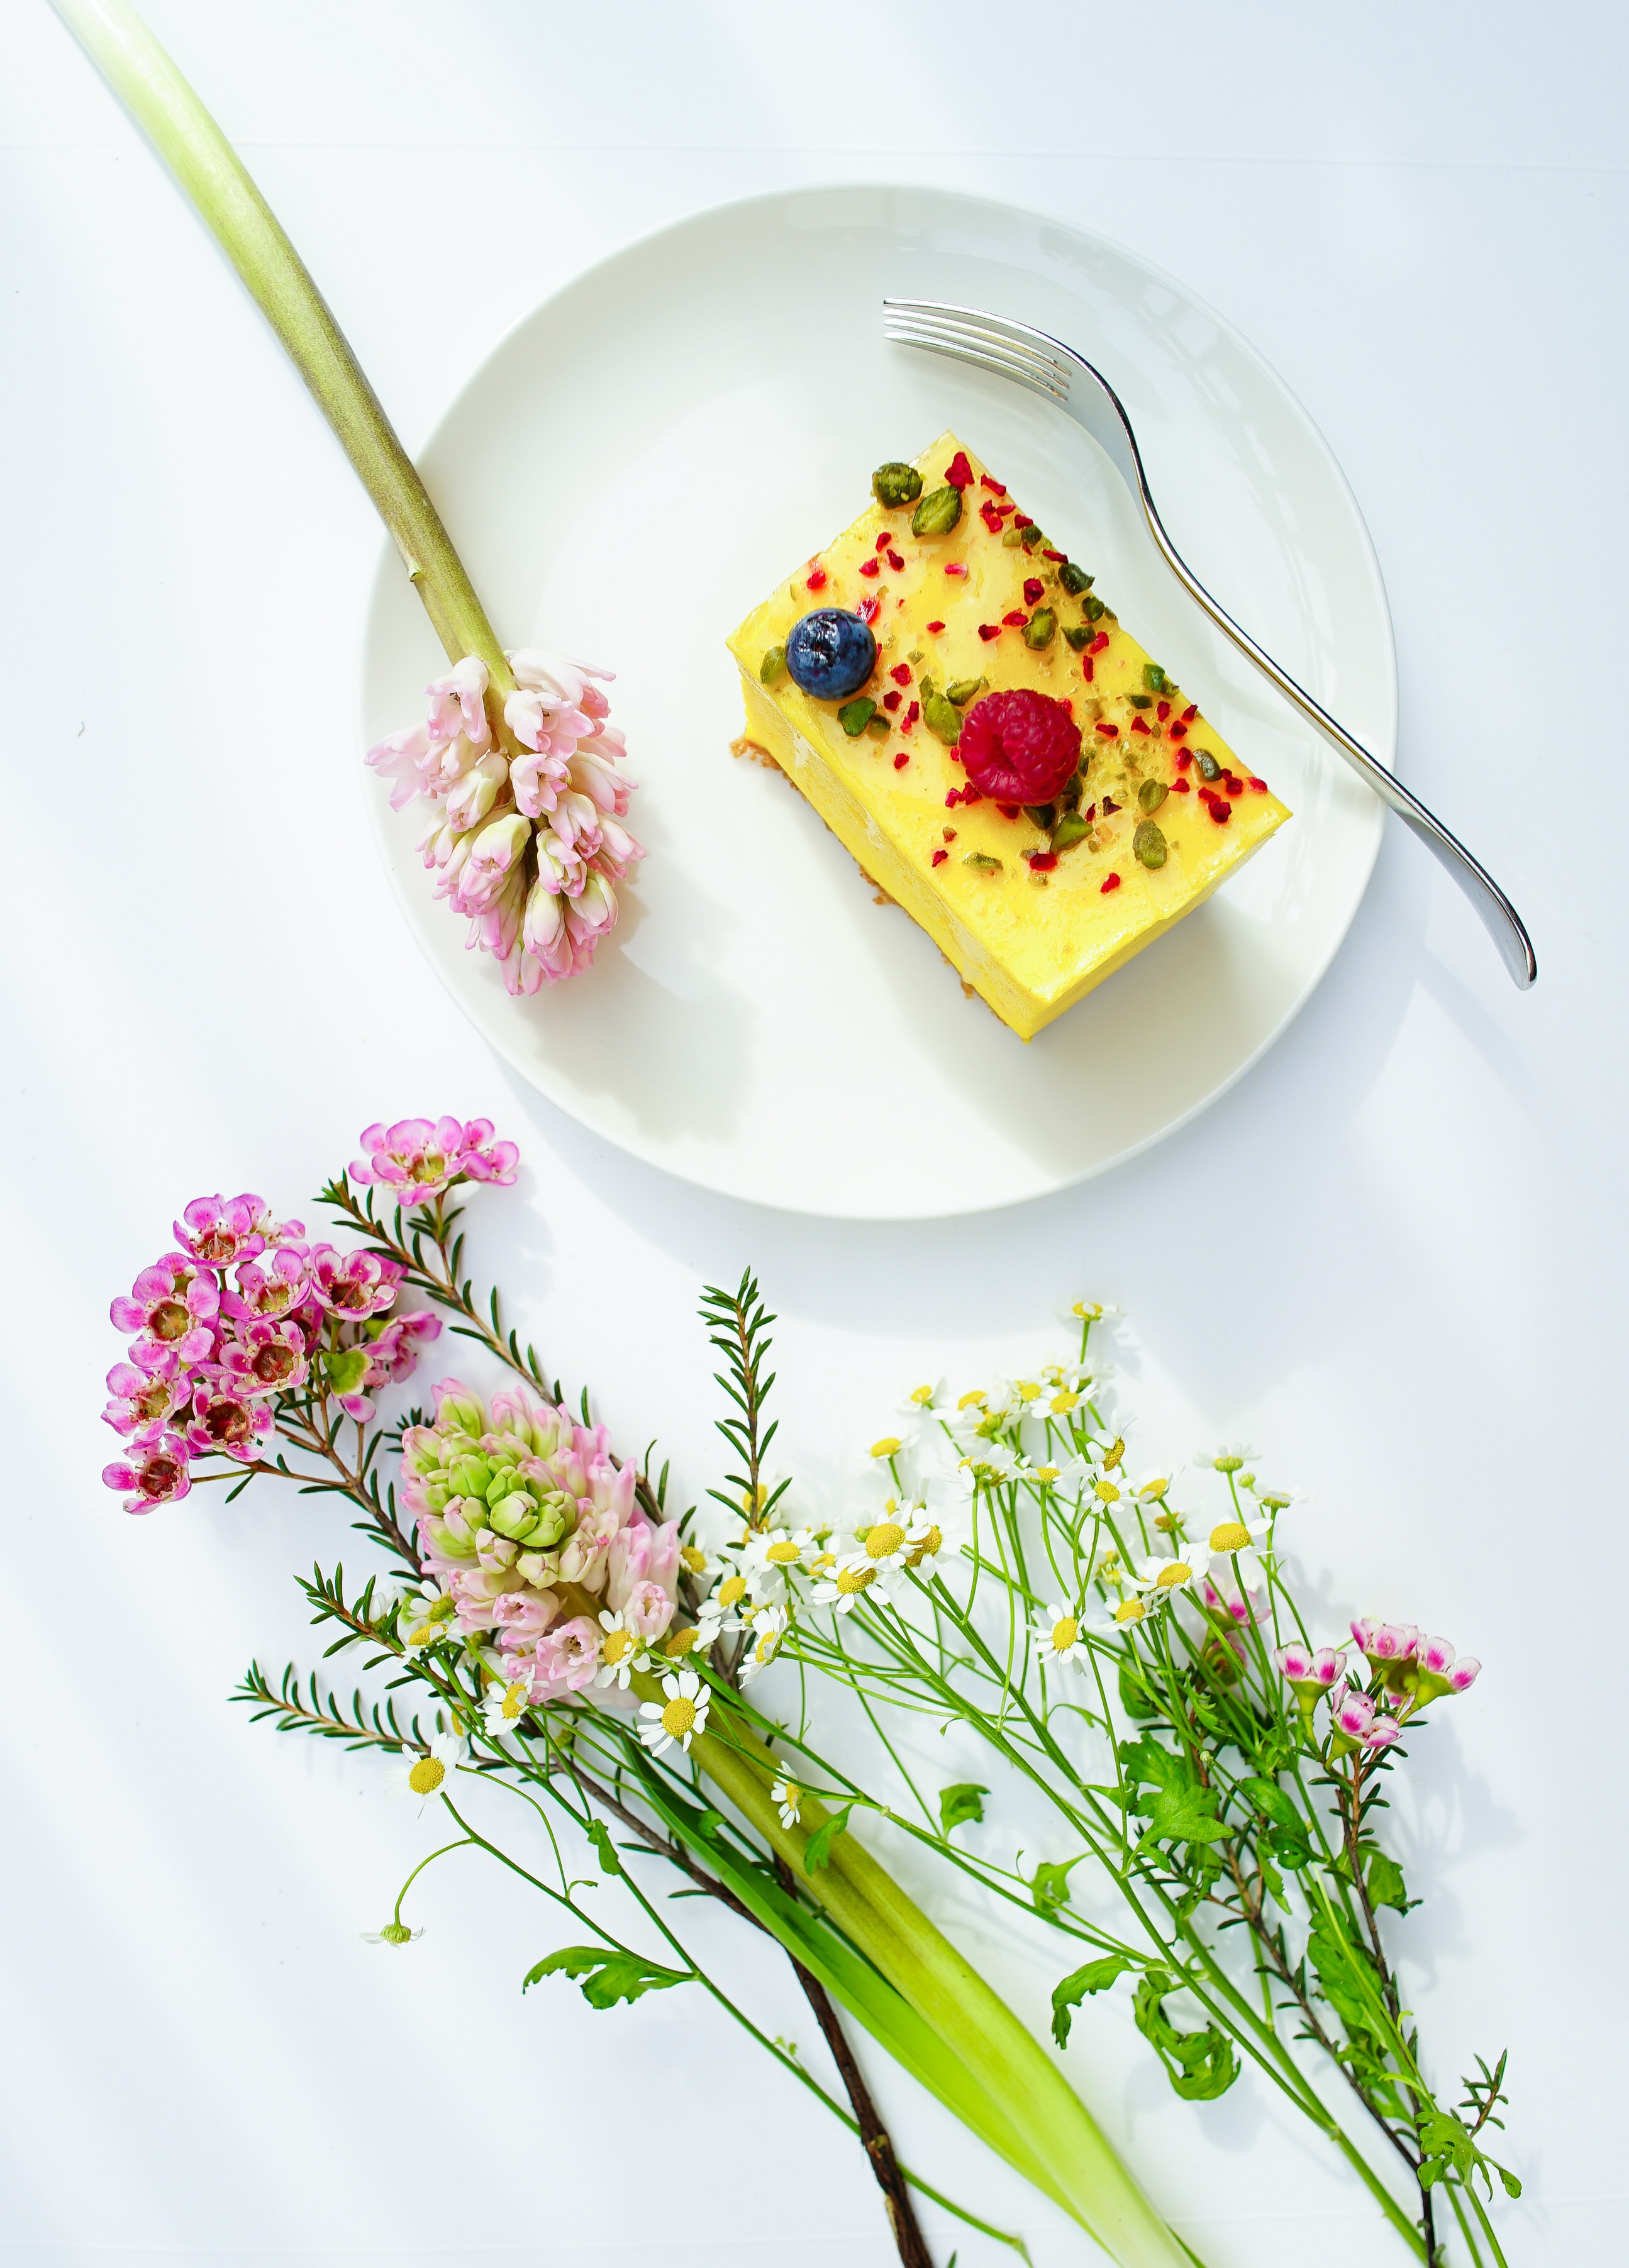 An overhead shot of a piece of cheesecake on a plate next to small bouquets of various flowers